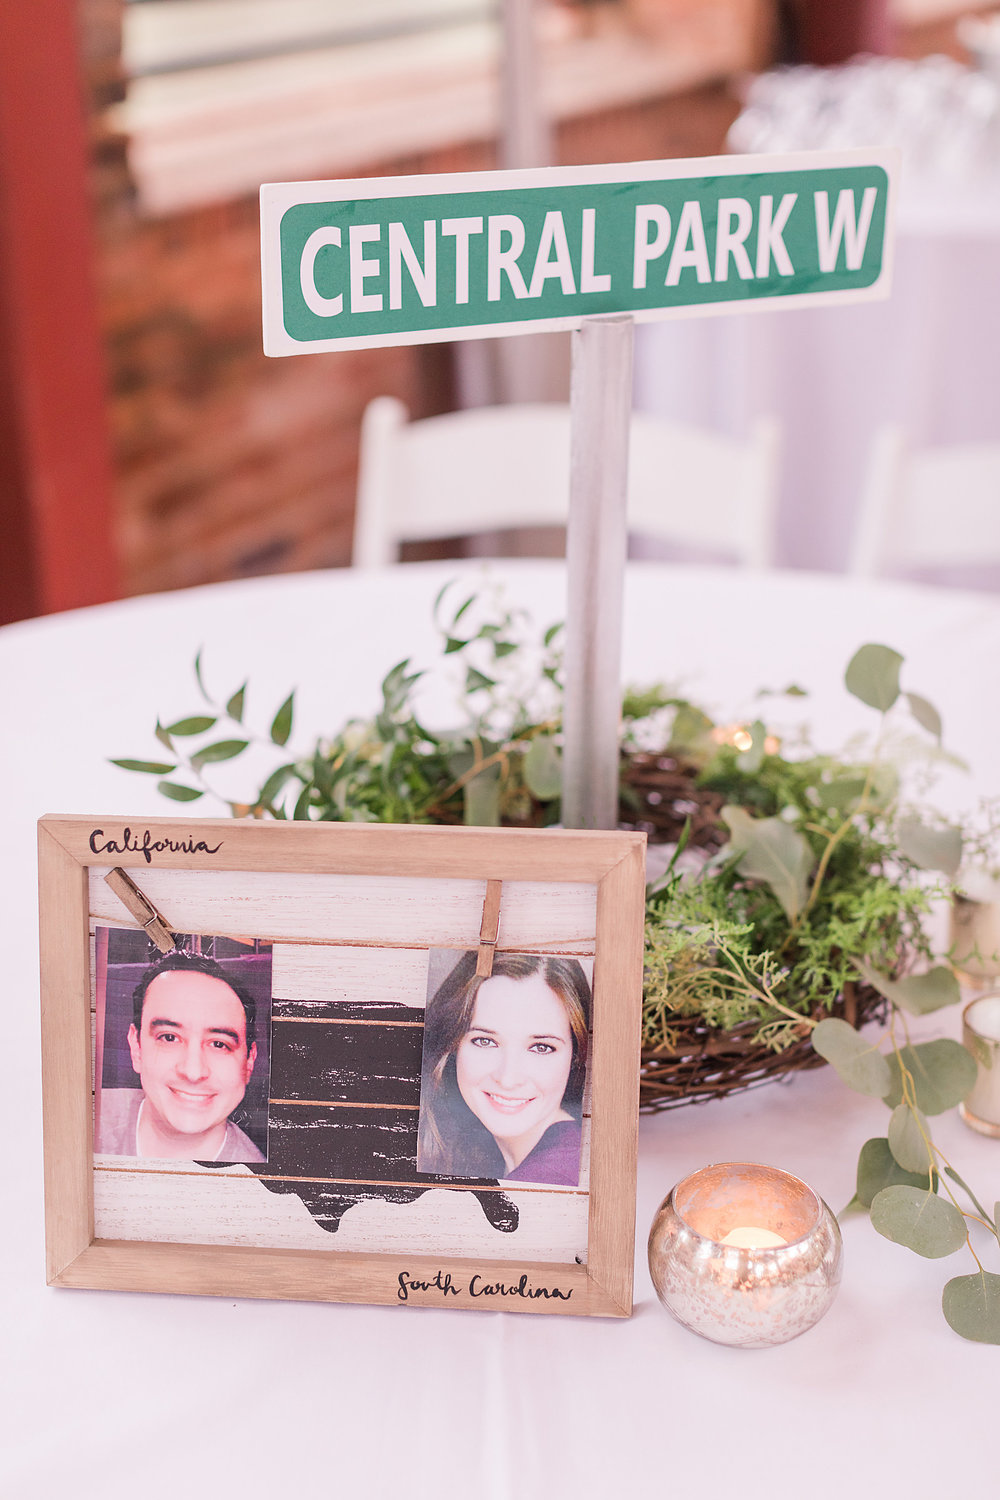 Every table assignment was one of these cute street sign table markers.